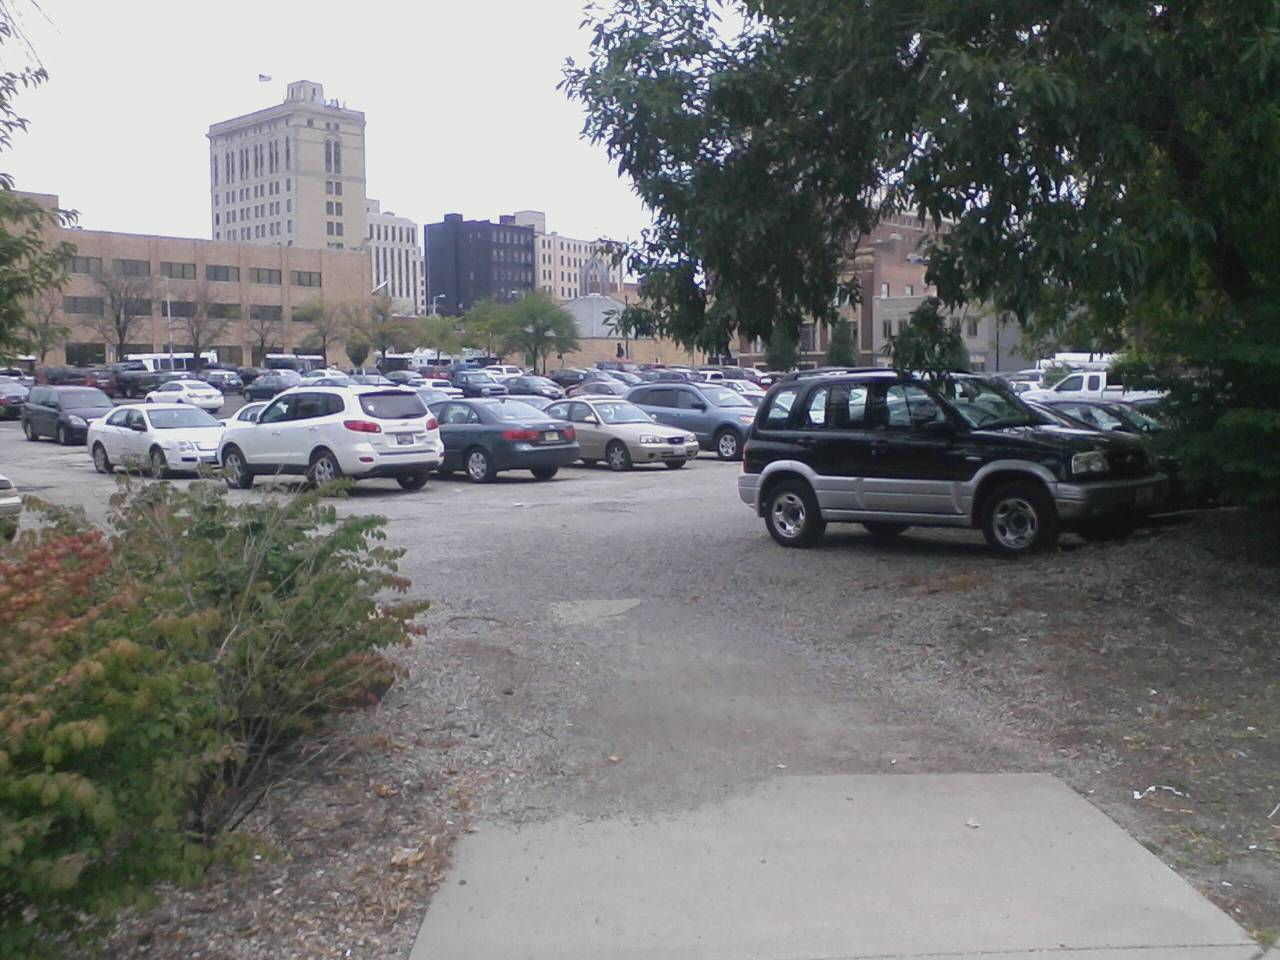 TIF Discussions Set for Downtown Parking Lot, YWCA